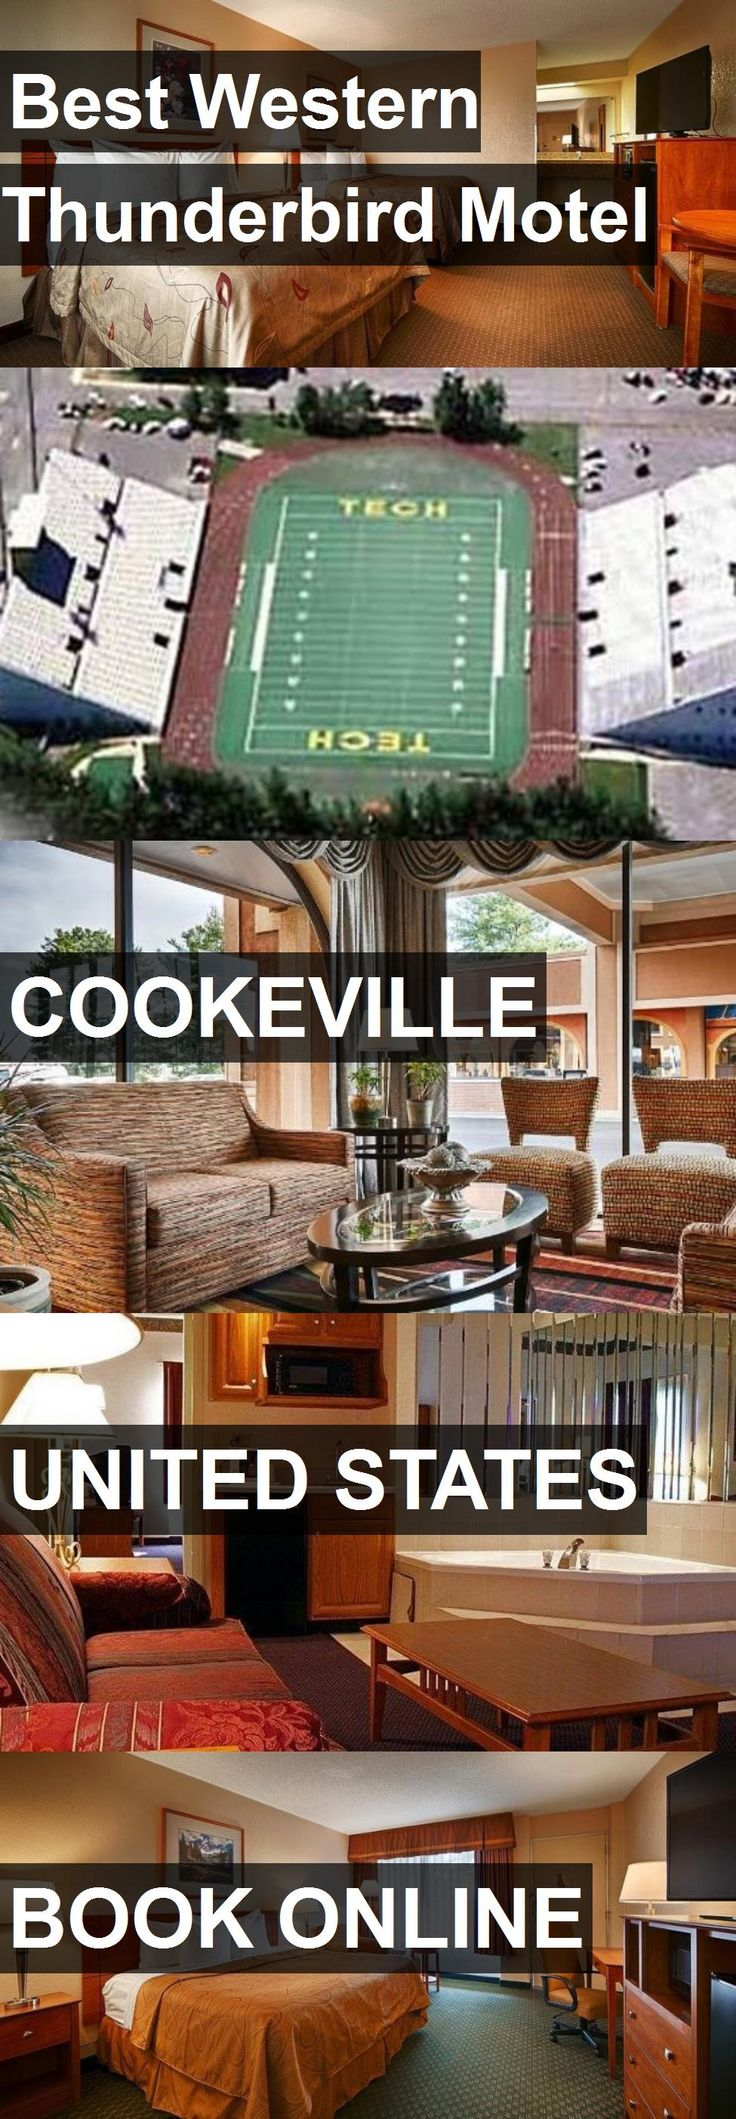 Hotel Best Western Thunderbird Motel in Cookeville, United States. For more information, photos, reviews and best prices please follow the link. #UnitedStates #Cookeville #BestWesternThunderbirdMotel #hotel #travel #vacation